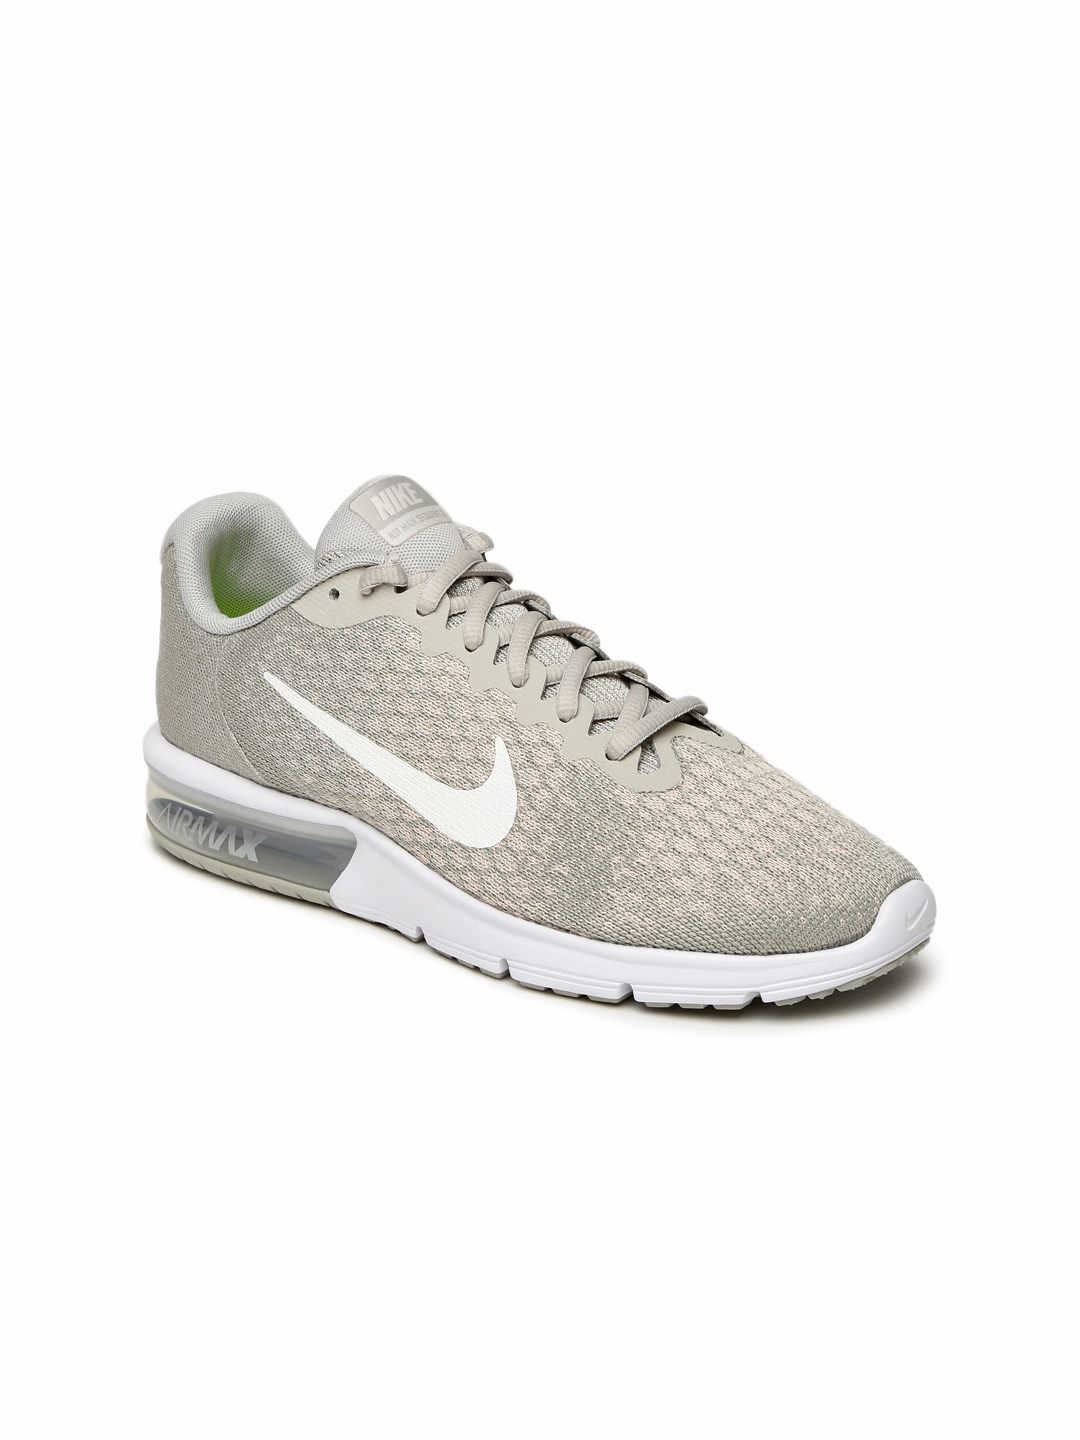 4fe35643c4 Buy Nike Women Beige AIR MAX SEQUENT 2 Running Shoes - Sports Shoes ...